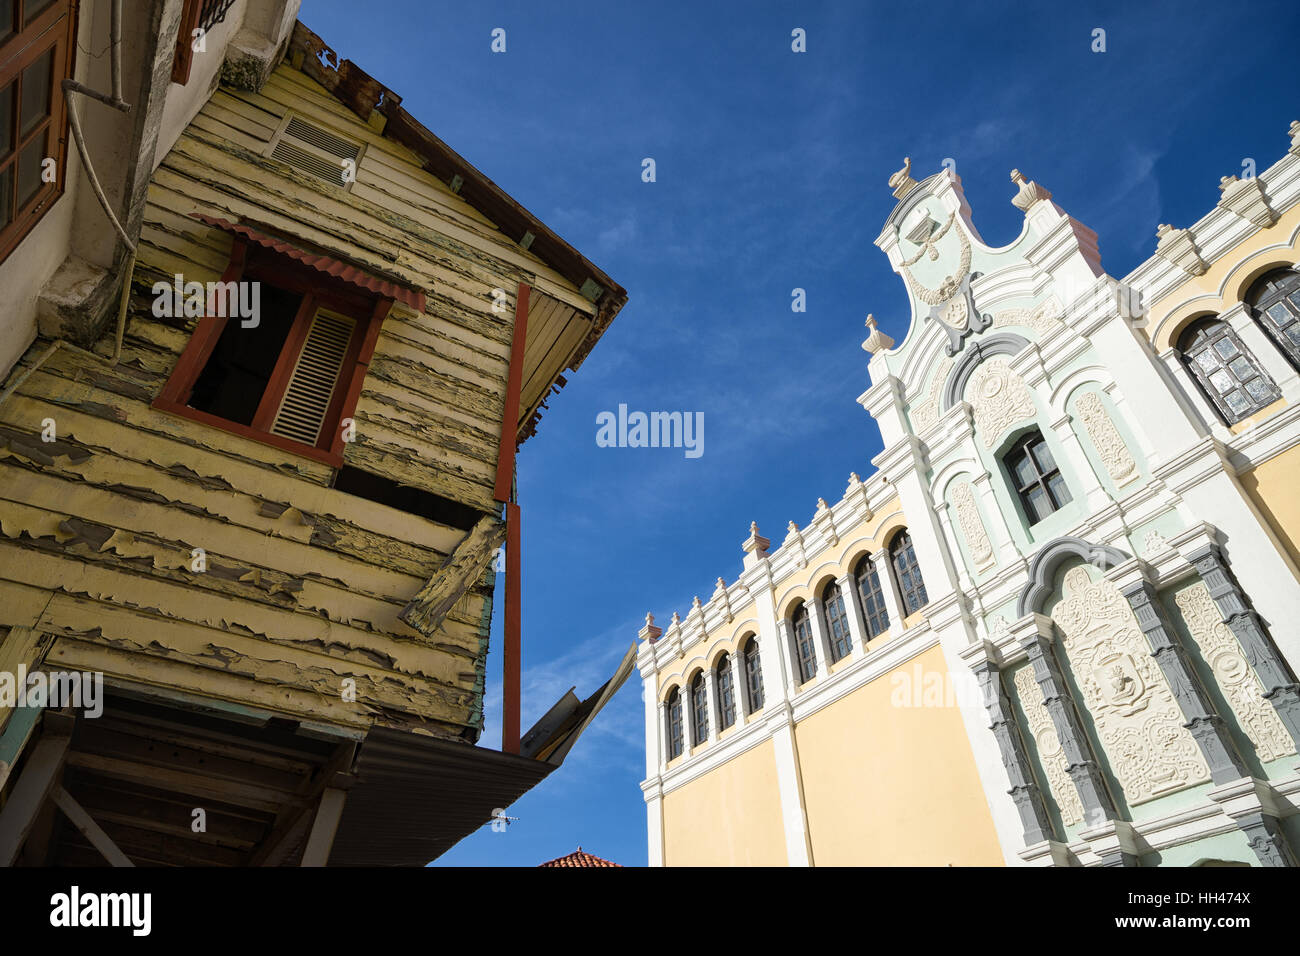 Colonial building facade newly renovated across a ruined wooden building - Stock Image